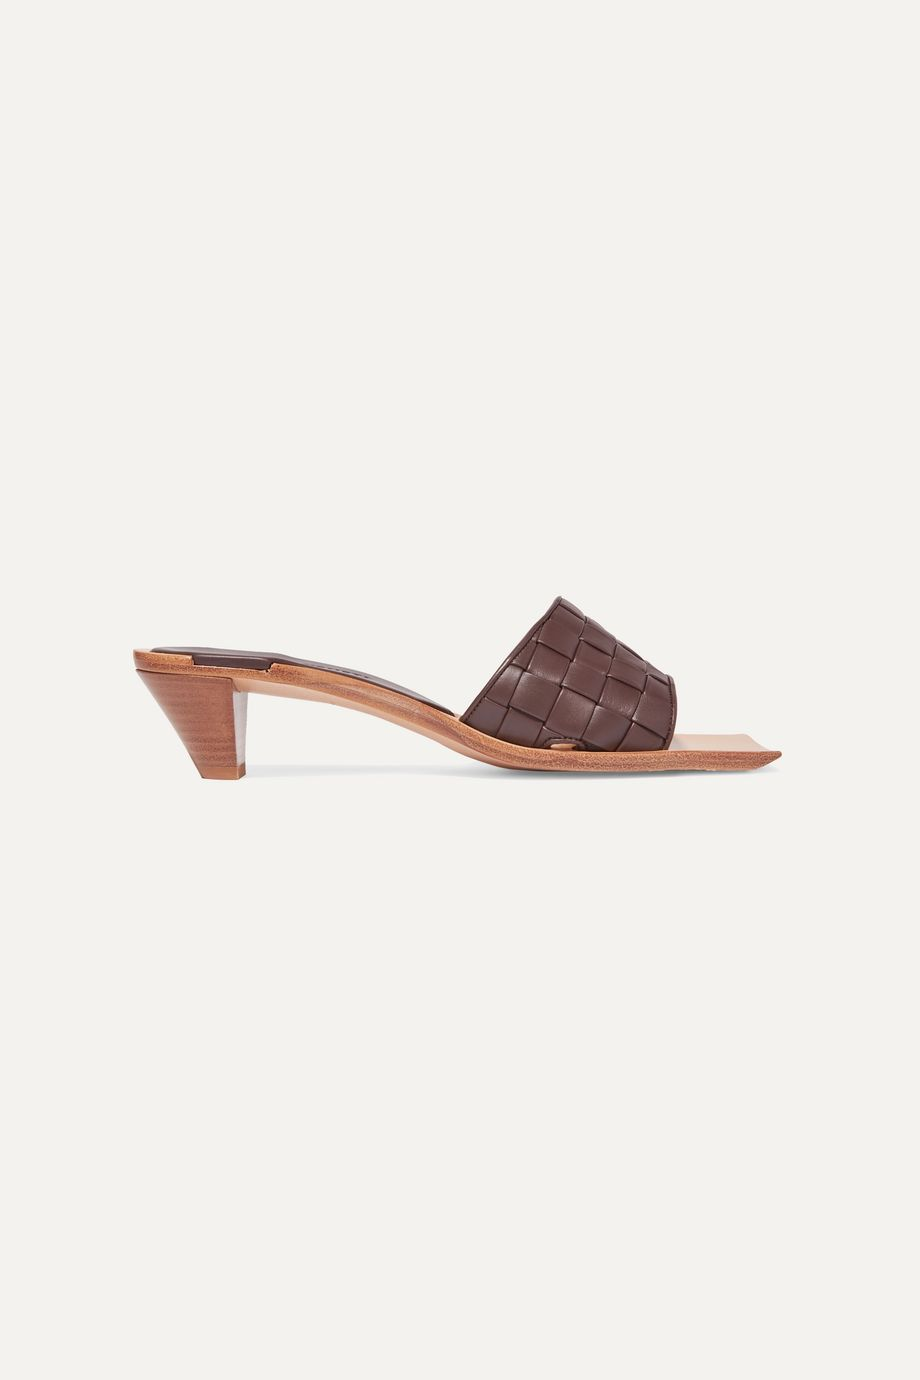 Bottega Veneta Intrecciato leather mules